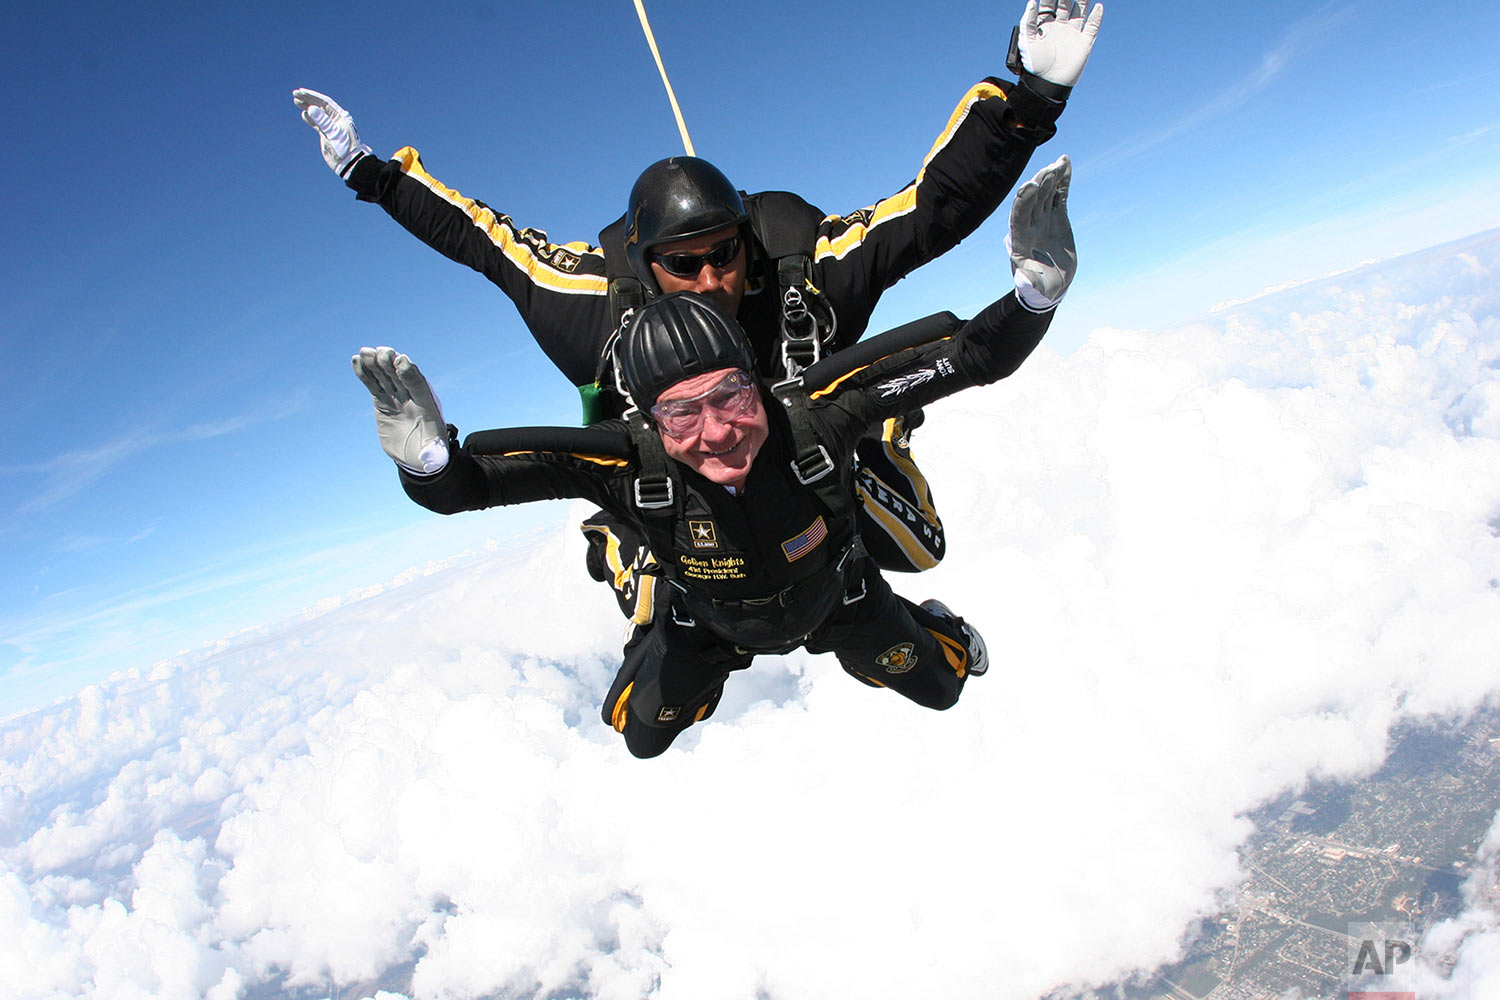 In this provided by the U.S. Army Golden Knights, former President George H.W. Bush free falls with Golden Knights parachute team member Sgt. 1st Class Mike Elliott, as he makes a dramatic entrance to his presidential museum on Nov. 10, 2007, during a rededication ceremony in College Station, Texas. (Sgt. 1st Class Kevin McDaniel/U.S. Army via AP)